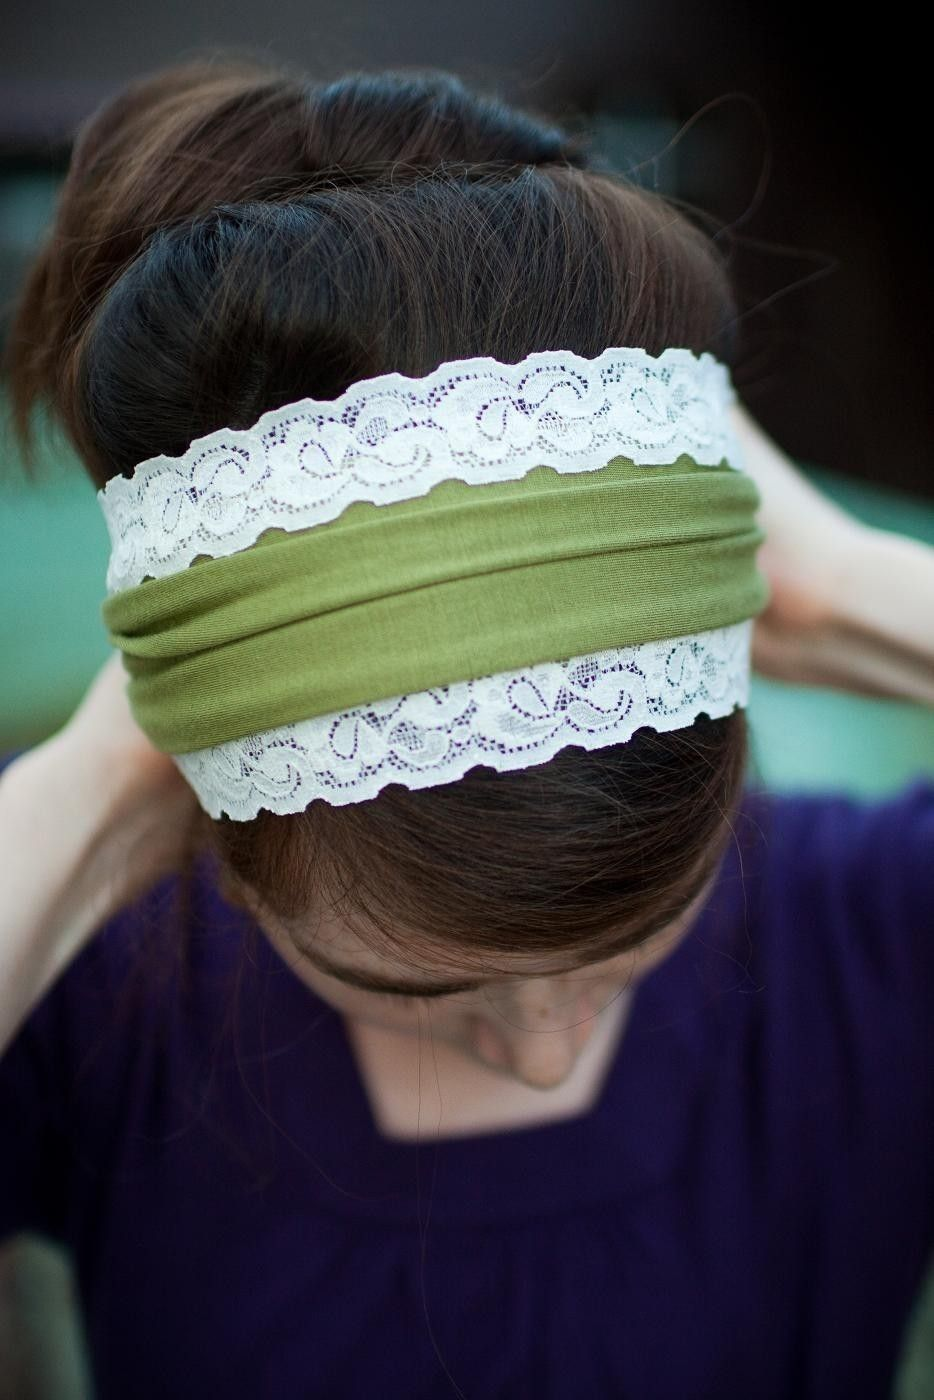 RUSTIC GREEN stretch trimmed scarf headcovering hair band head wrap covering. $20.00, via Etsy.